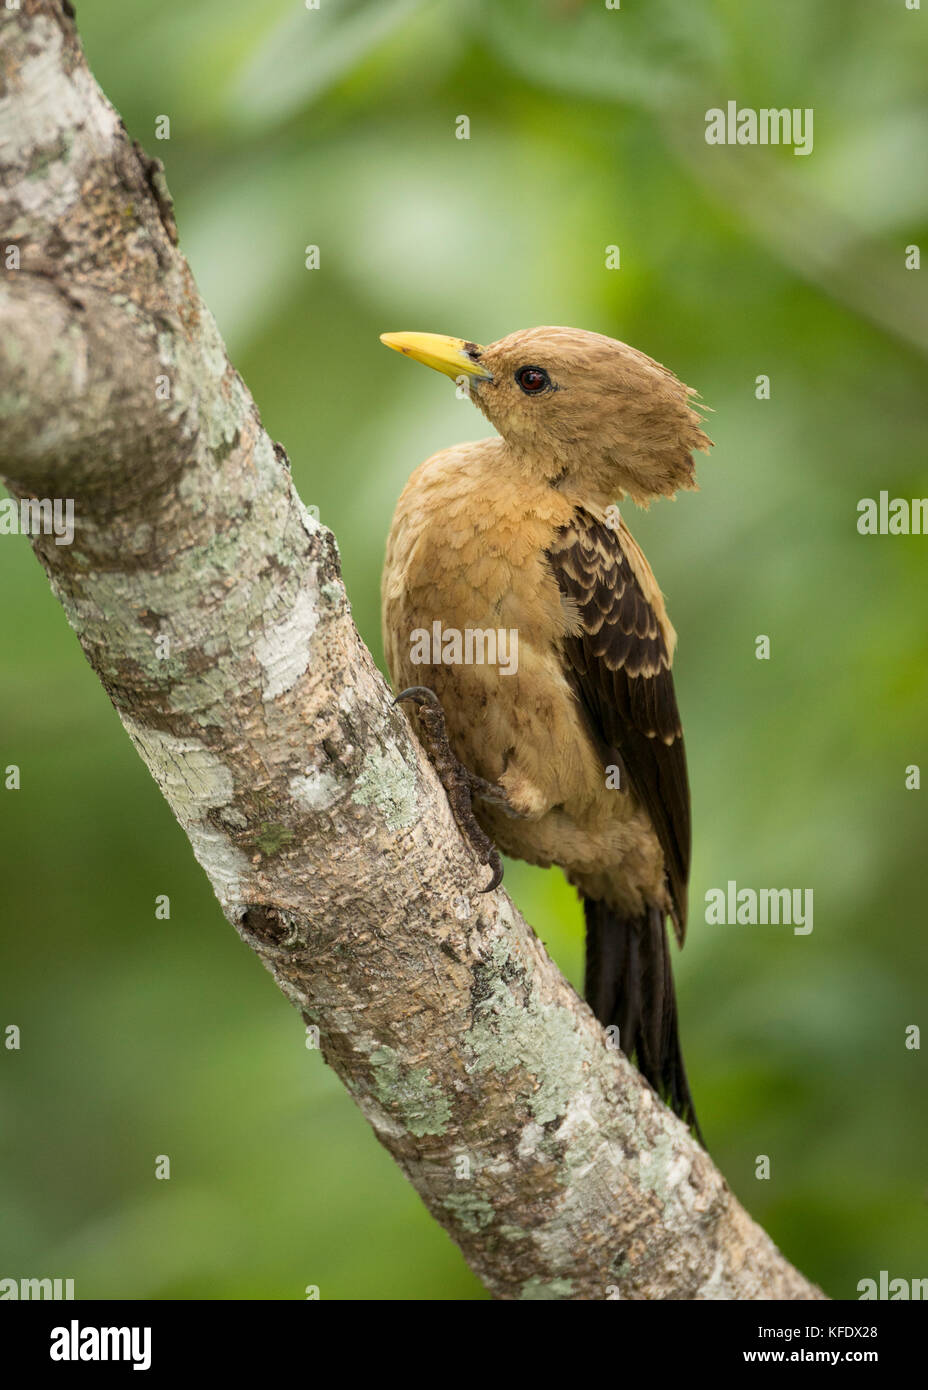 A female Cream-colored Woodpecker (Celeus flavus) from the Pantanal - Stock Image